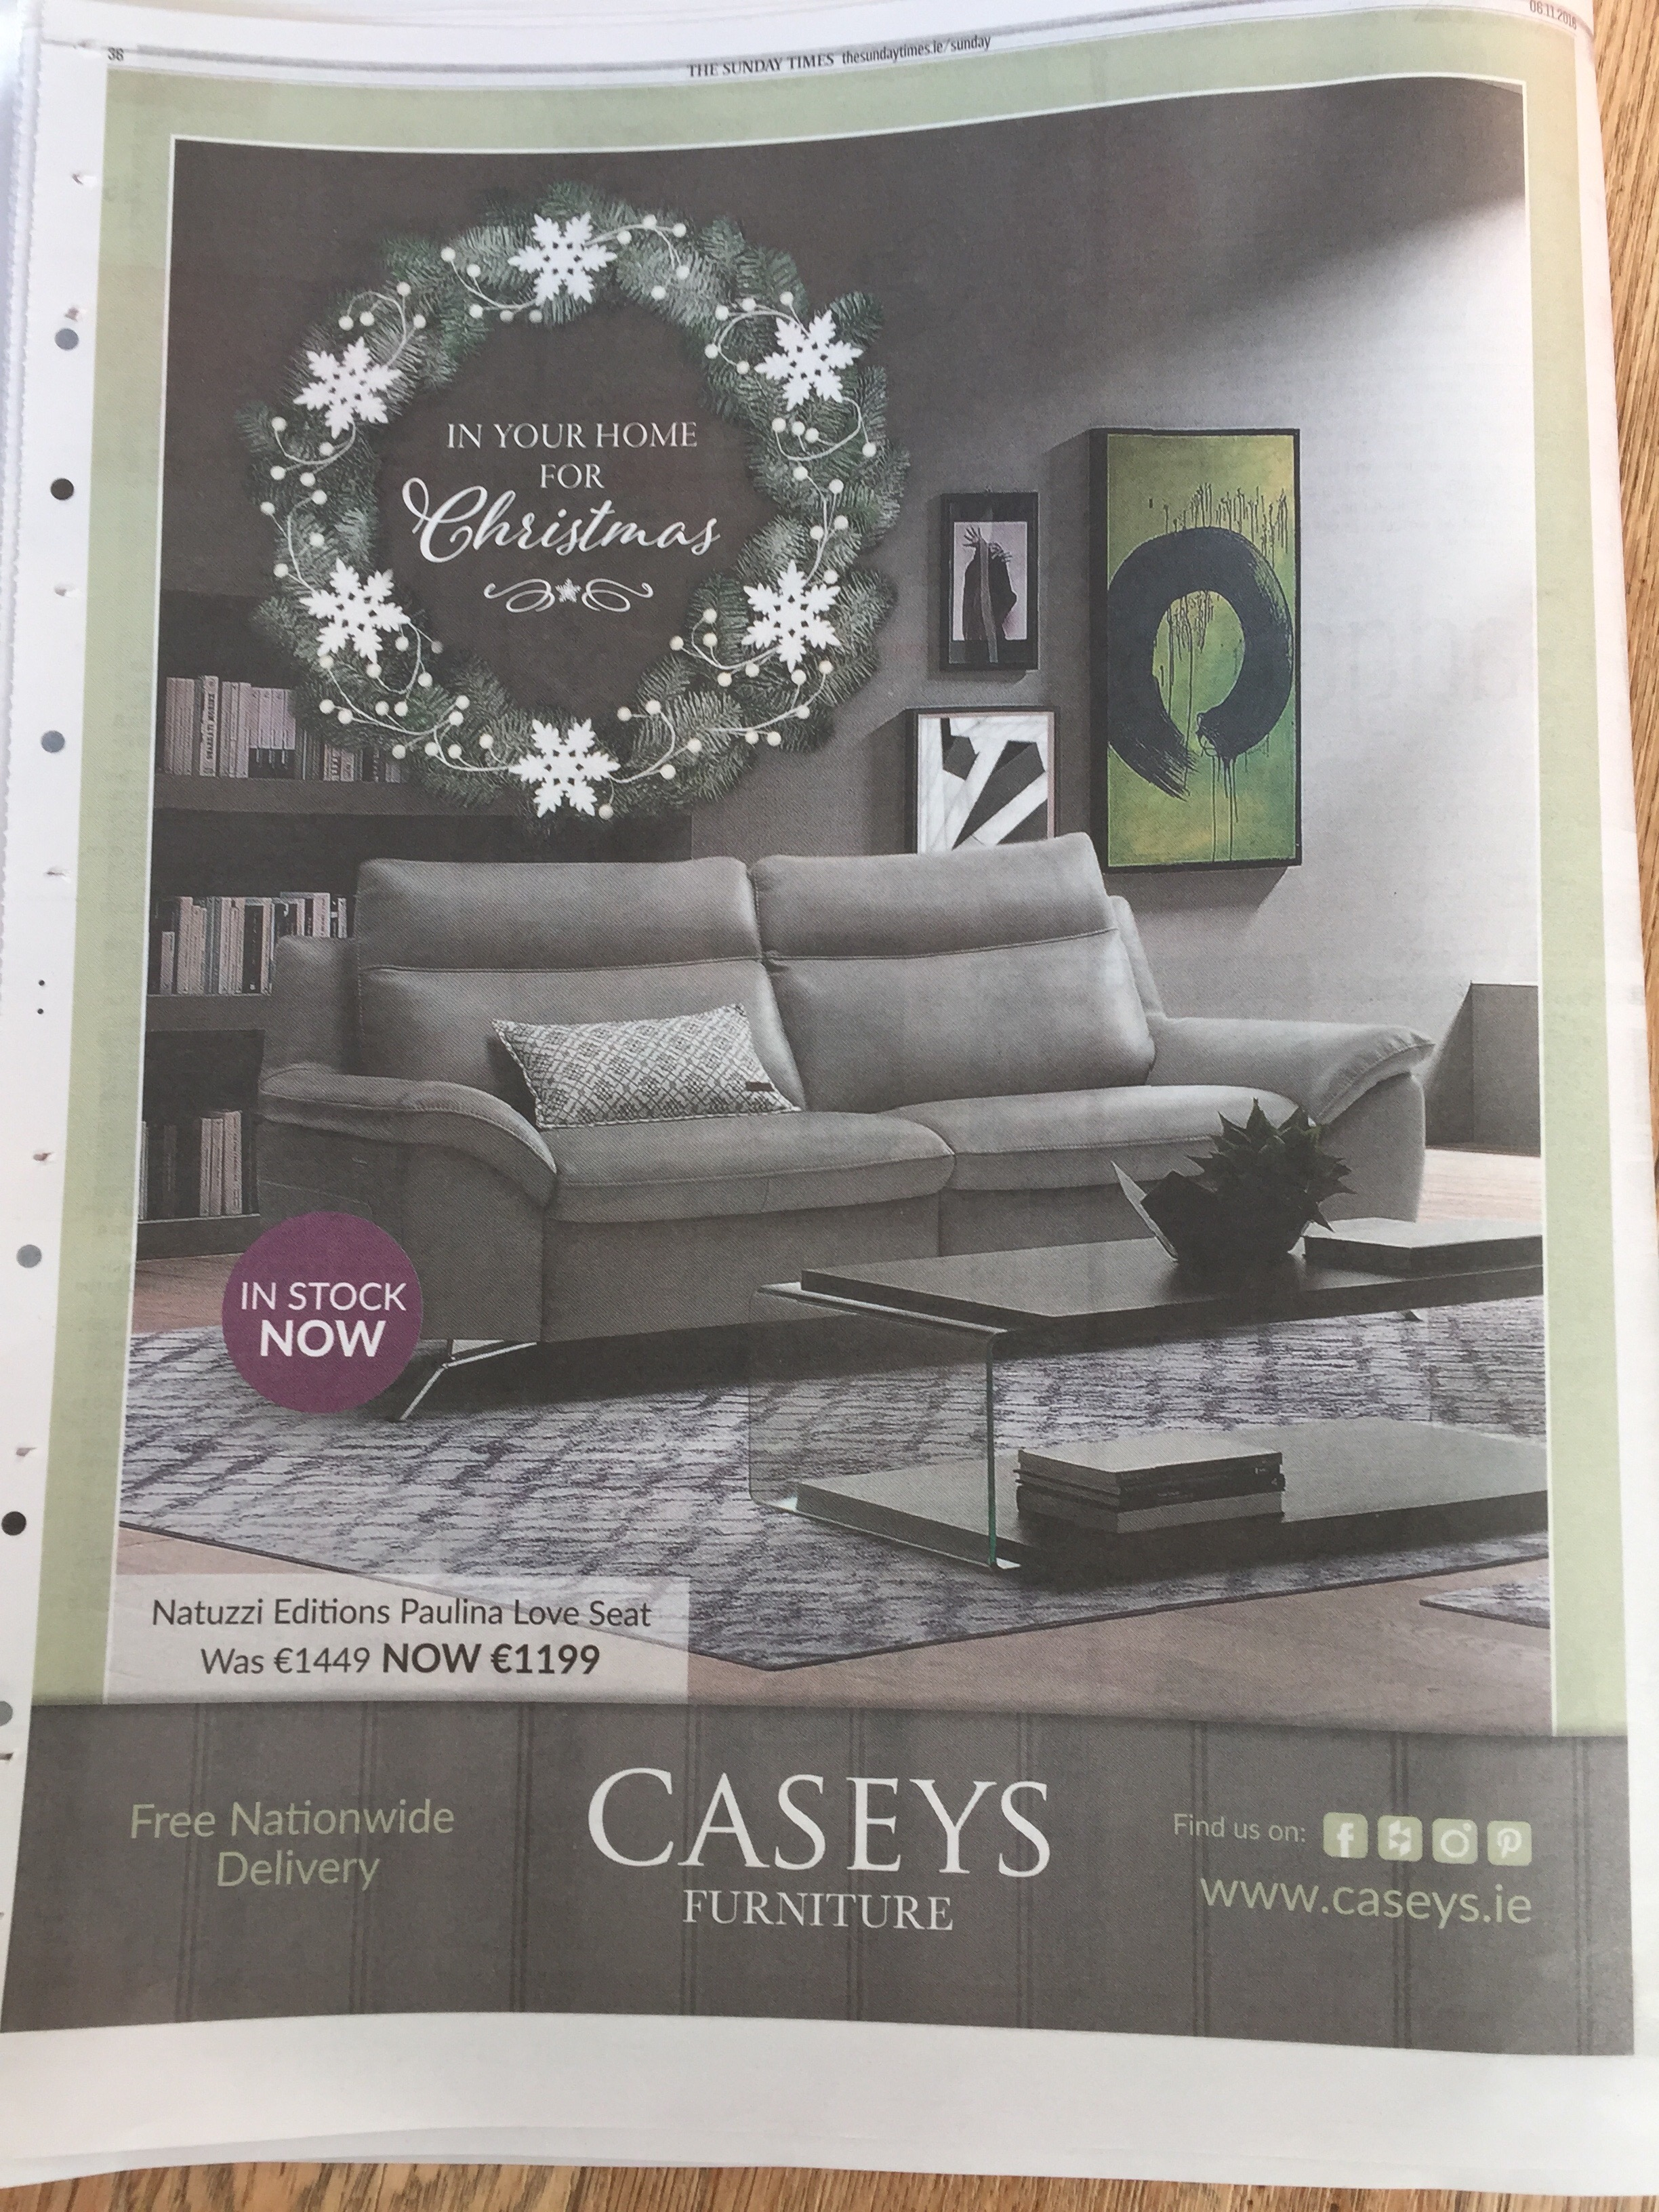 Casey's – in your home for Christmas